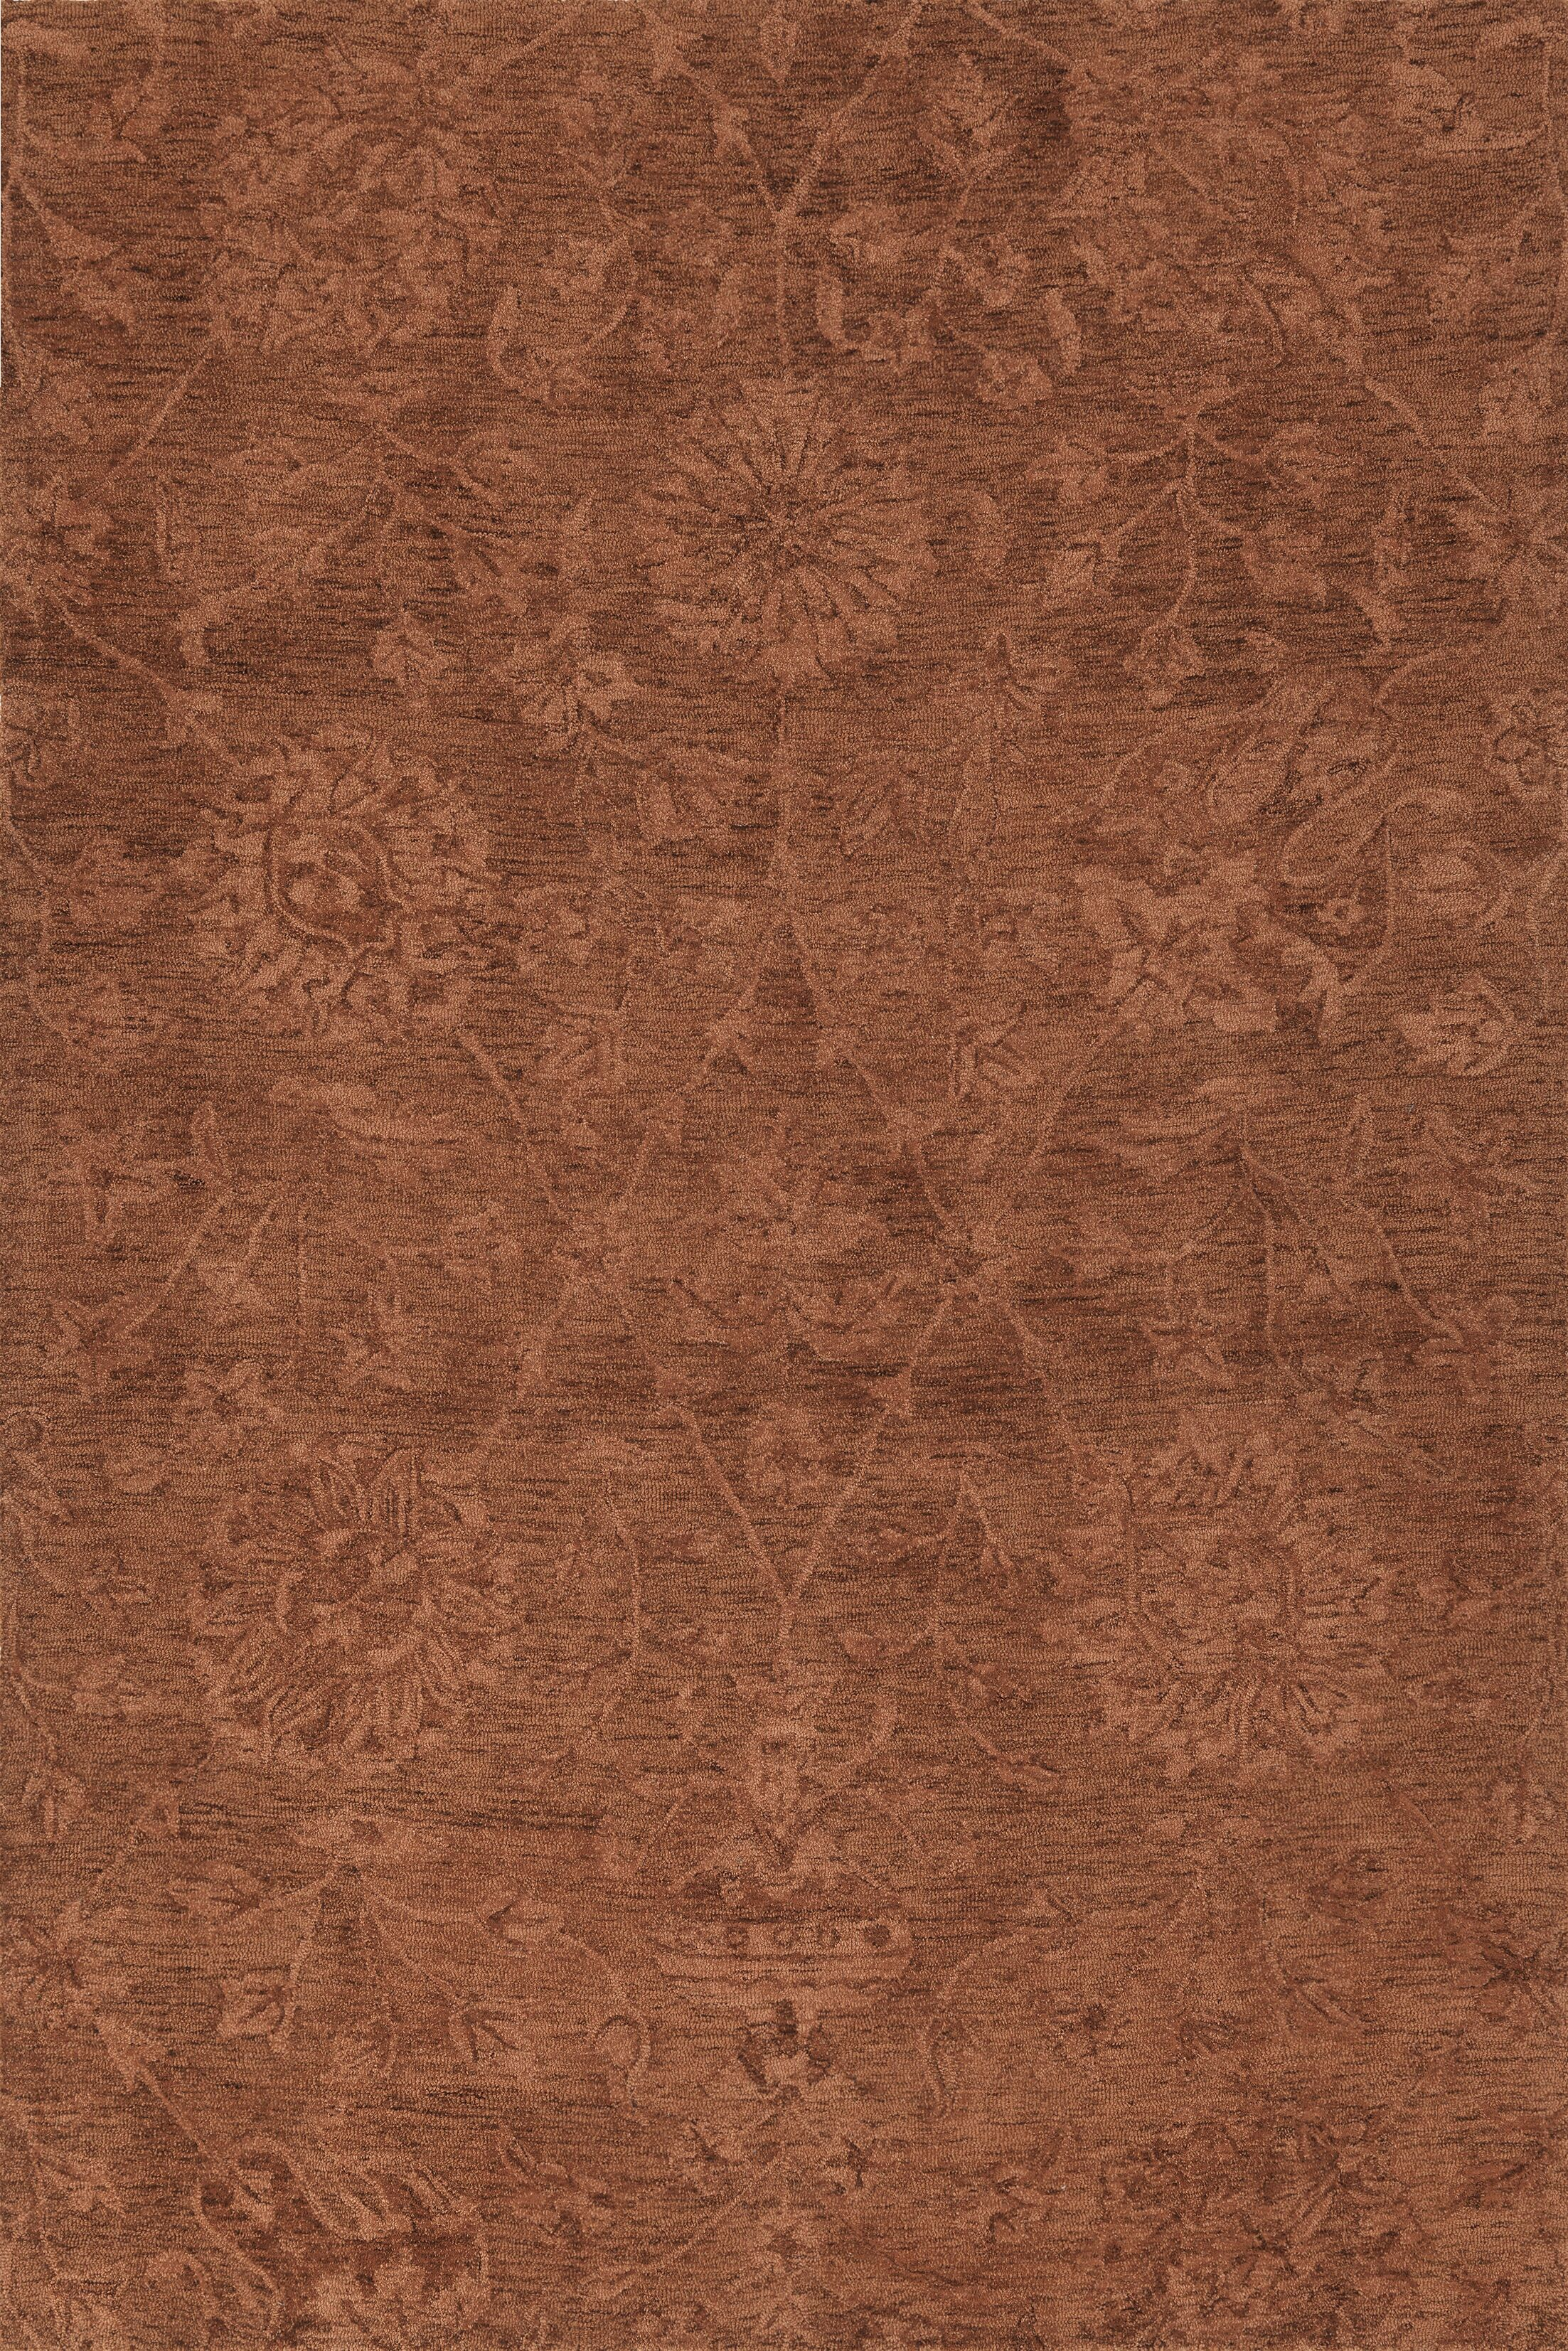 Chatmon Hand-Tufted Wool Copper Area Rug Rug Size: Rectangle 3'6